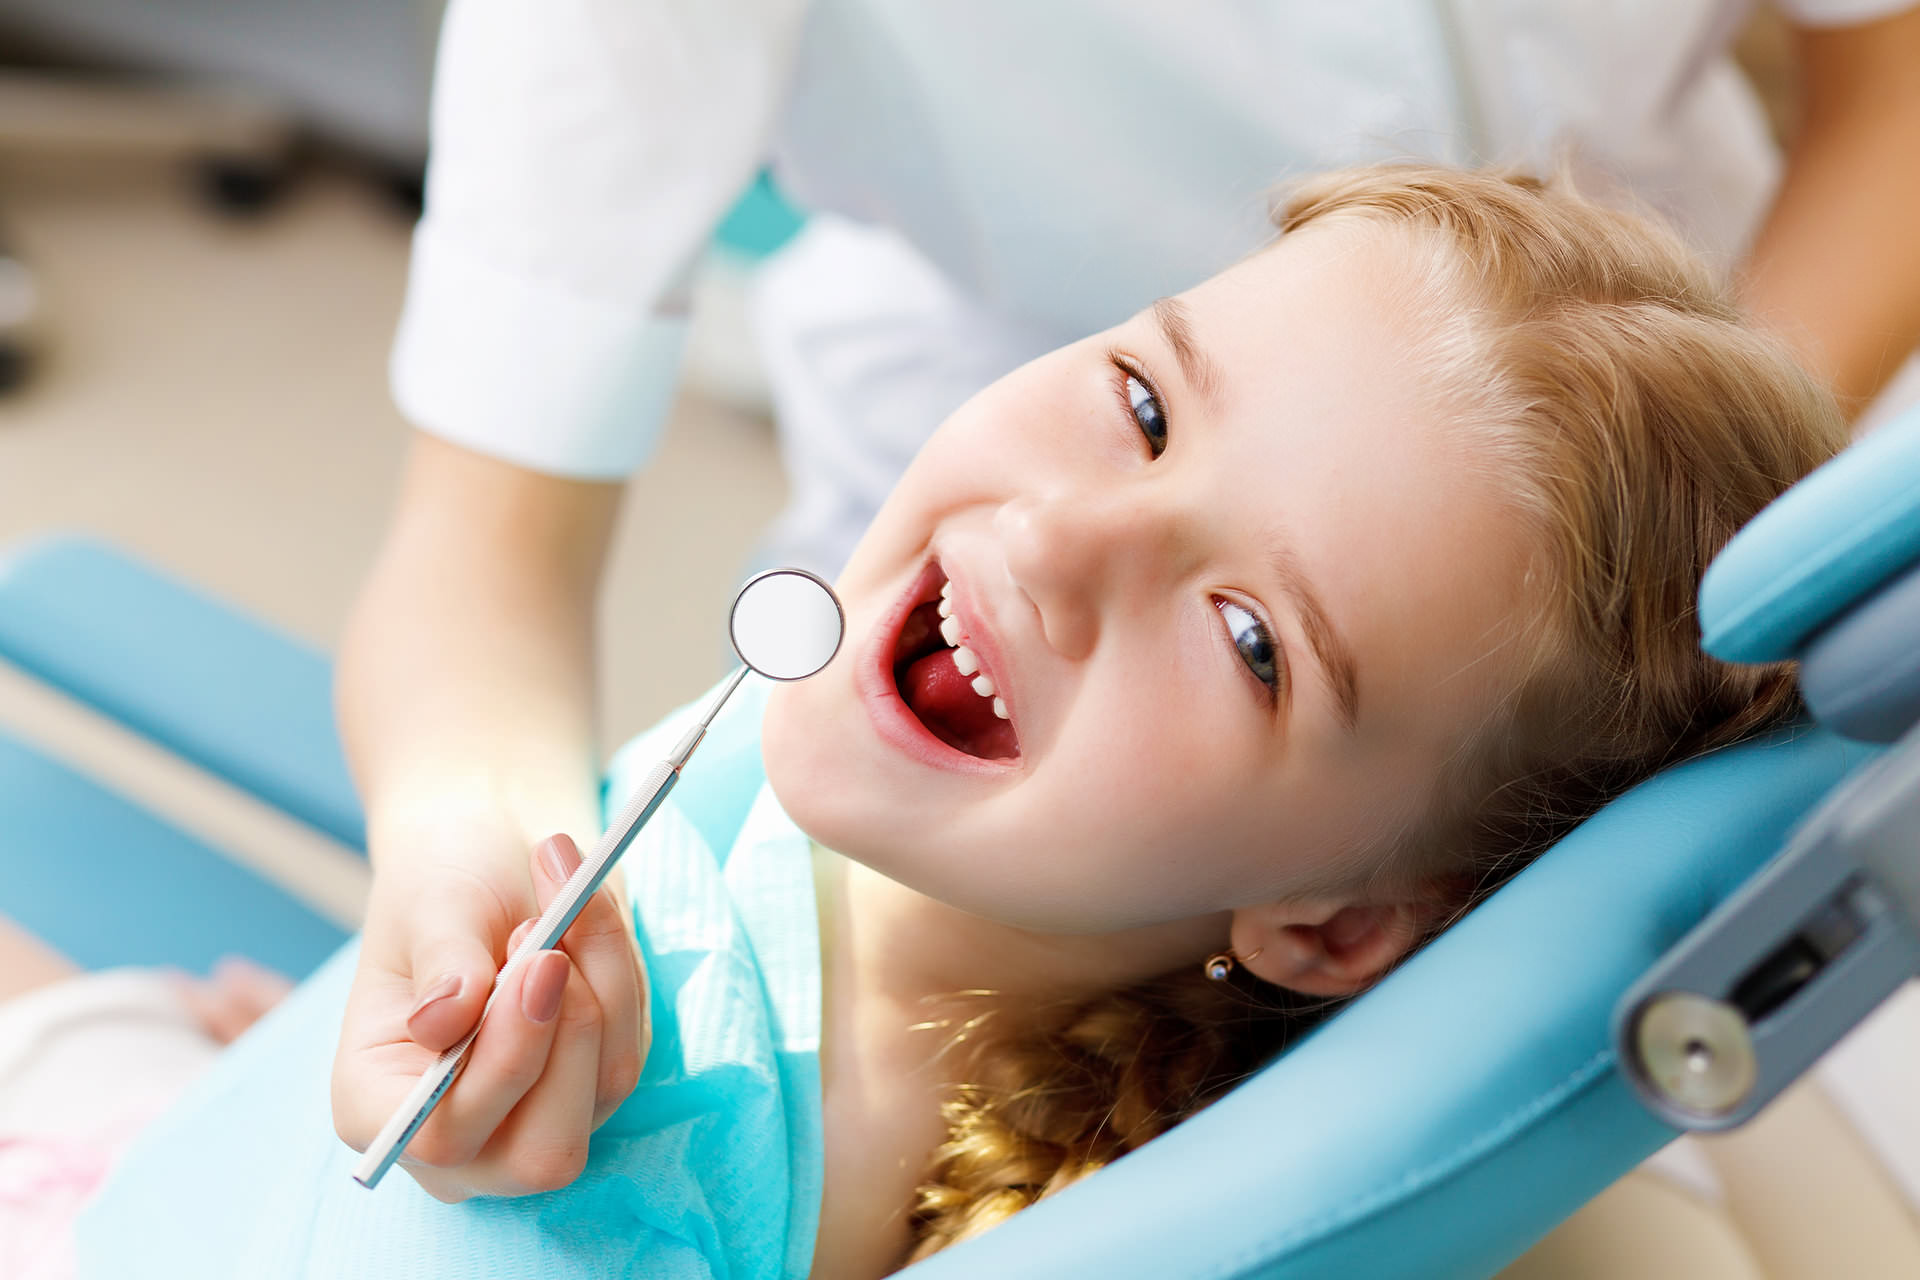 The Pediatric Dentists - Small Child in Chair